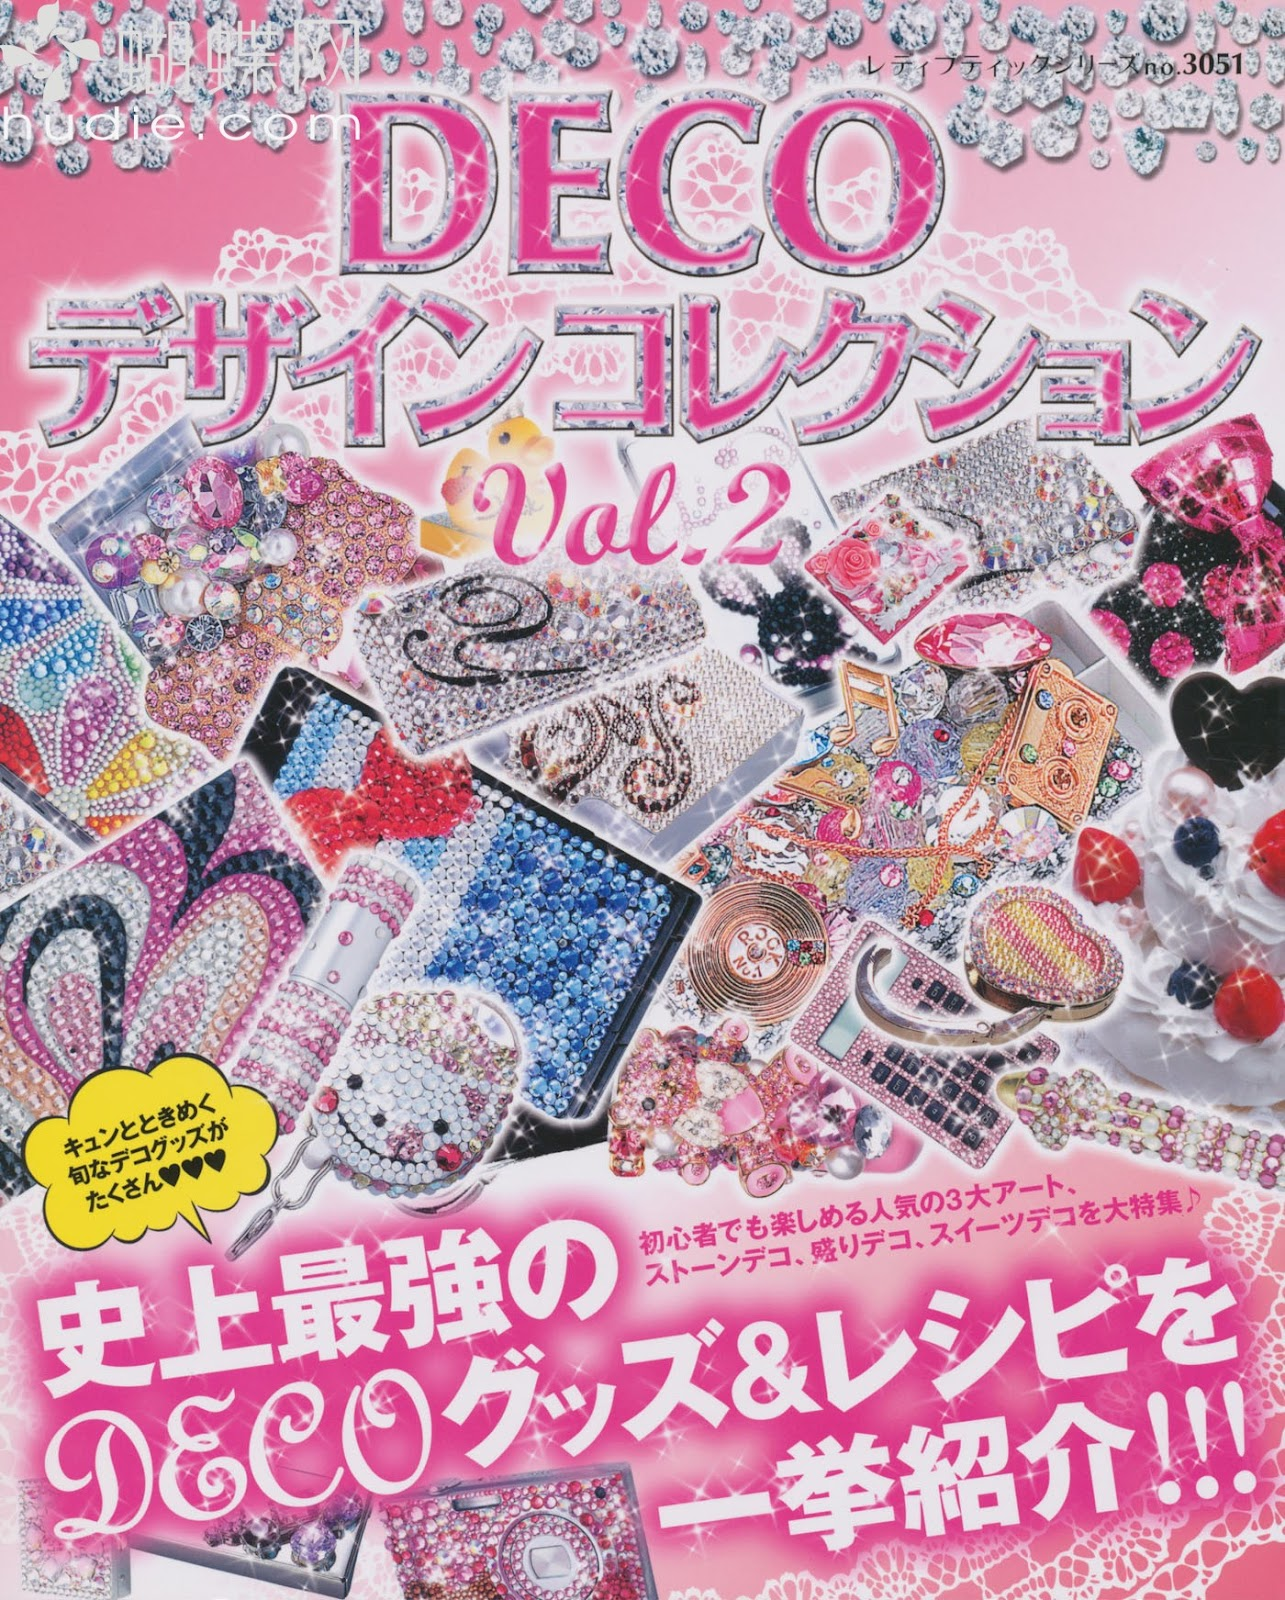 Deco デザインコレクション Design Collection vol 2 japanese magazine scans deco book